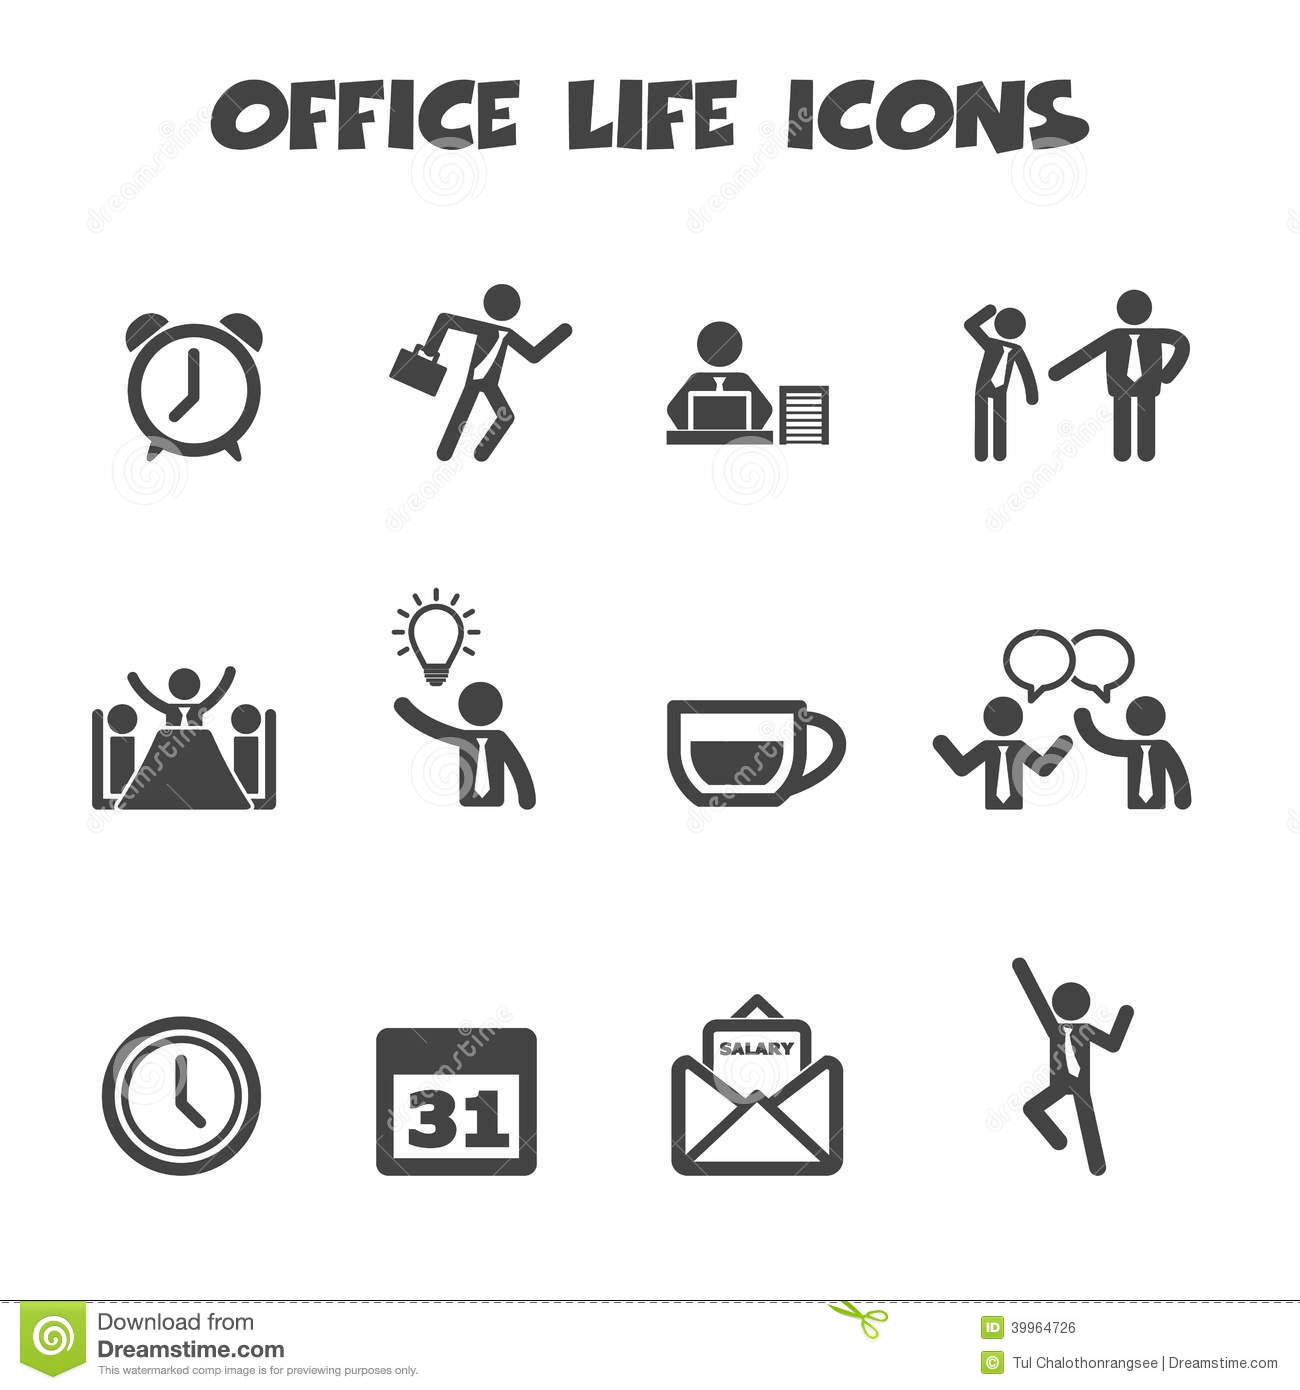 Icones De La Vie De Bureau Illustration De Vecteur